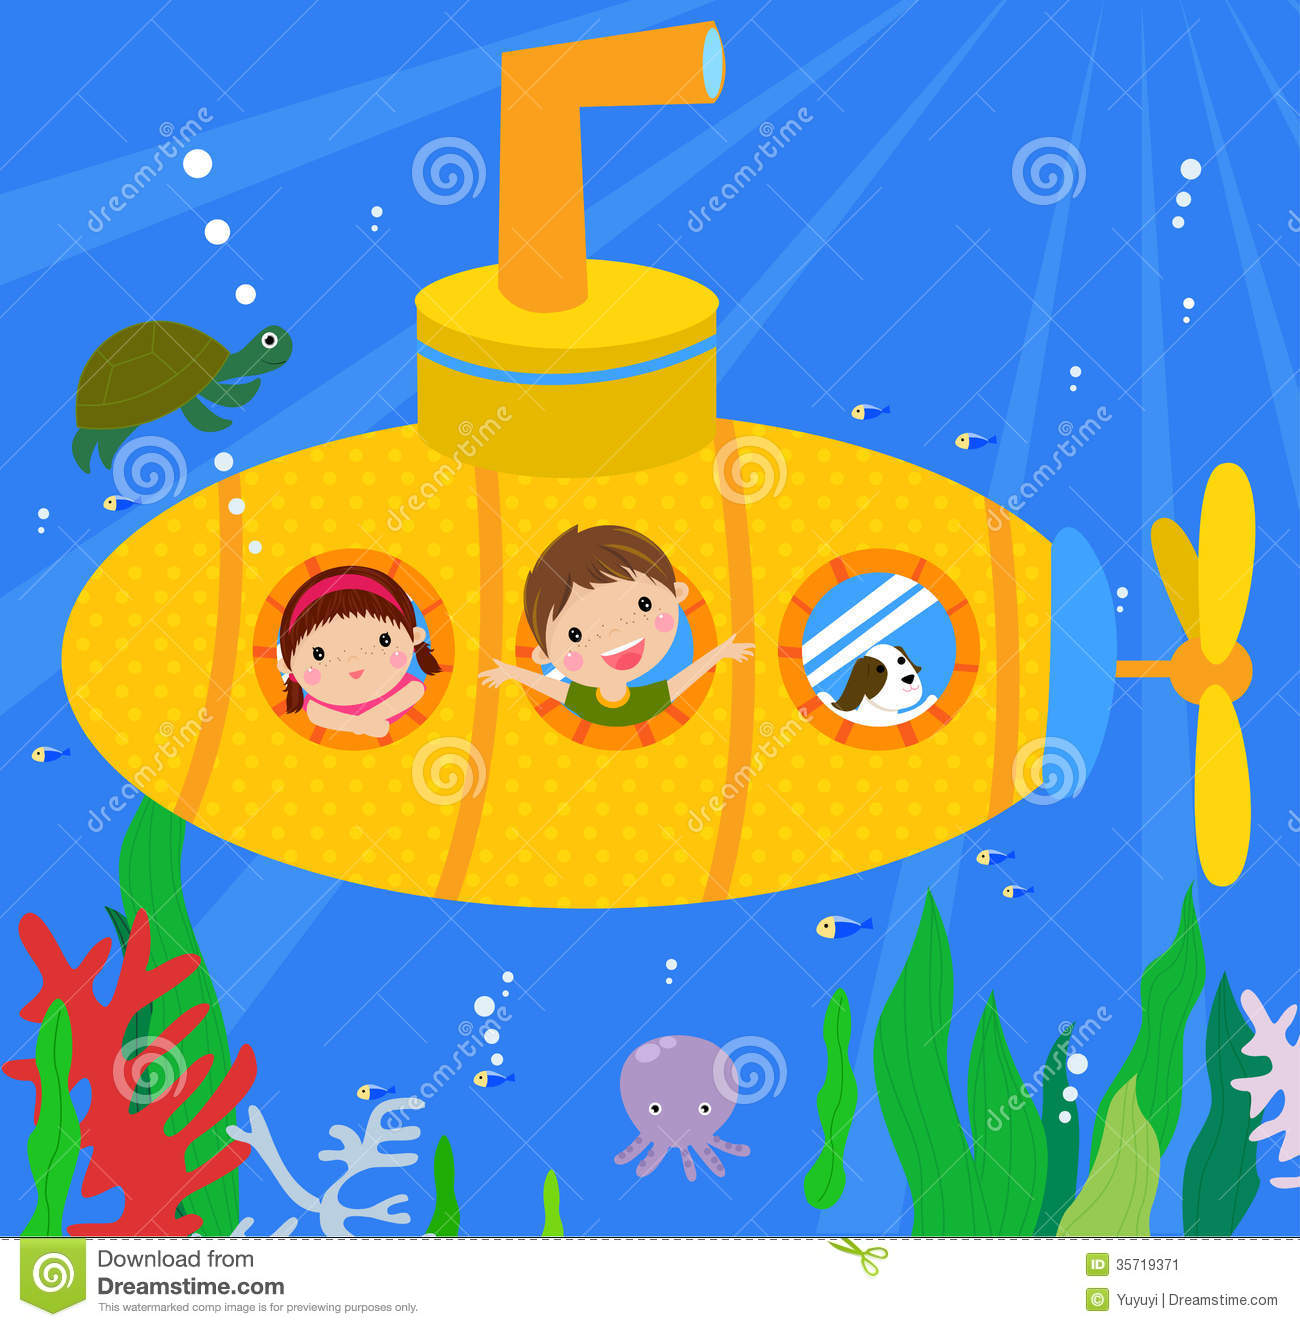 toy submarines with Stock Image Submarine Kids Cute Cartoon Image35719371 on TypeVII C further Stock Image Submarine Kids Cute Cartoon Image35719371 further 6081 furthermore Superyacht Support Vessels With Helicopters Subs Sports Cars And Security Define Ultimate Luxury further French Naval Innovations Years Ahead Of.